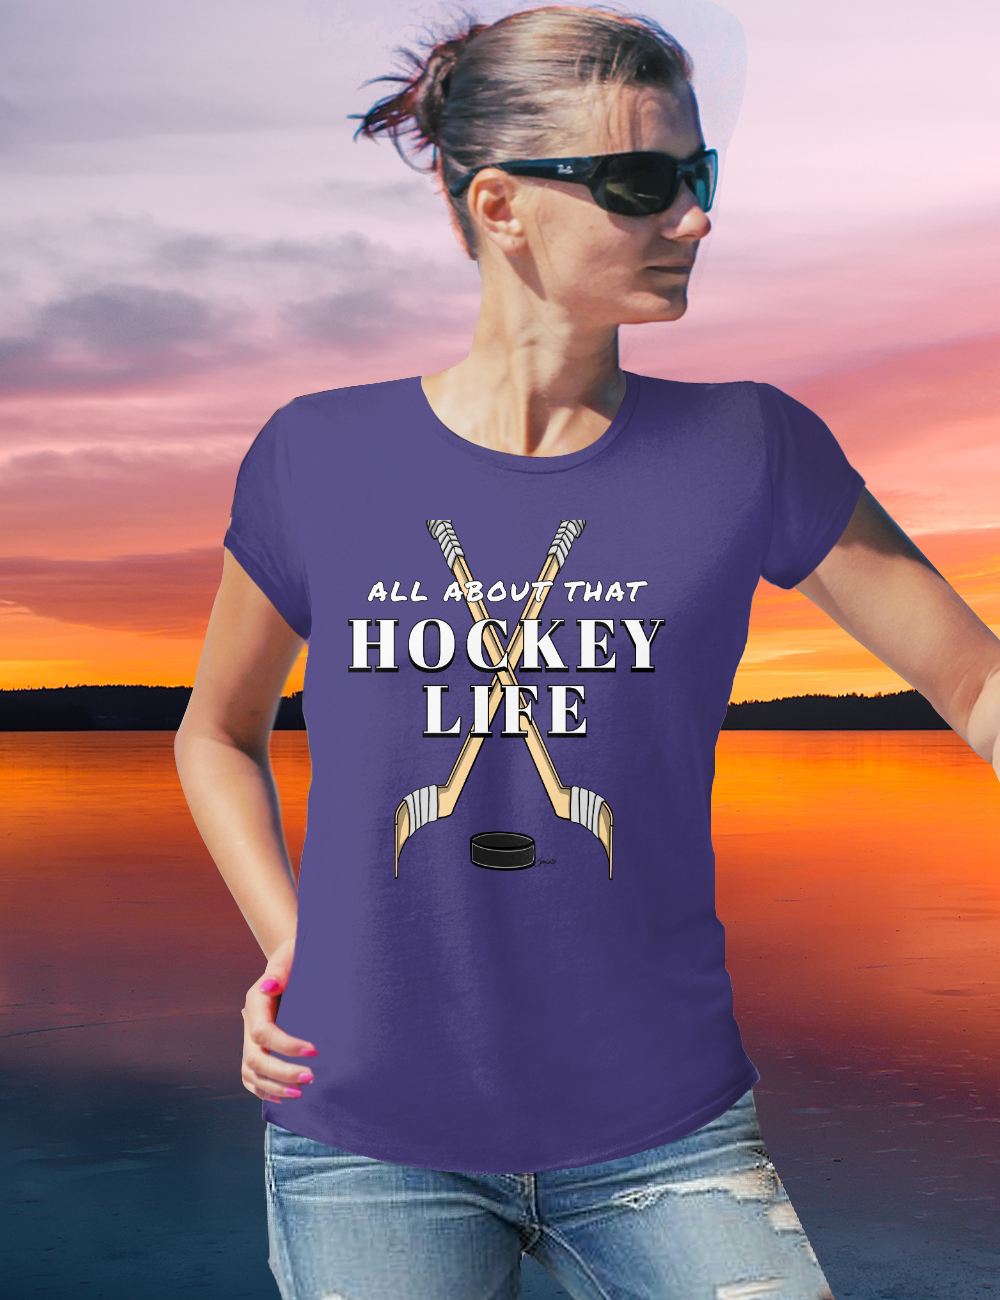 Ice Hockey Players ALL ABOUT THAT HOCKEY LIFE Tshirt